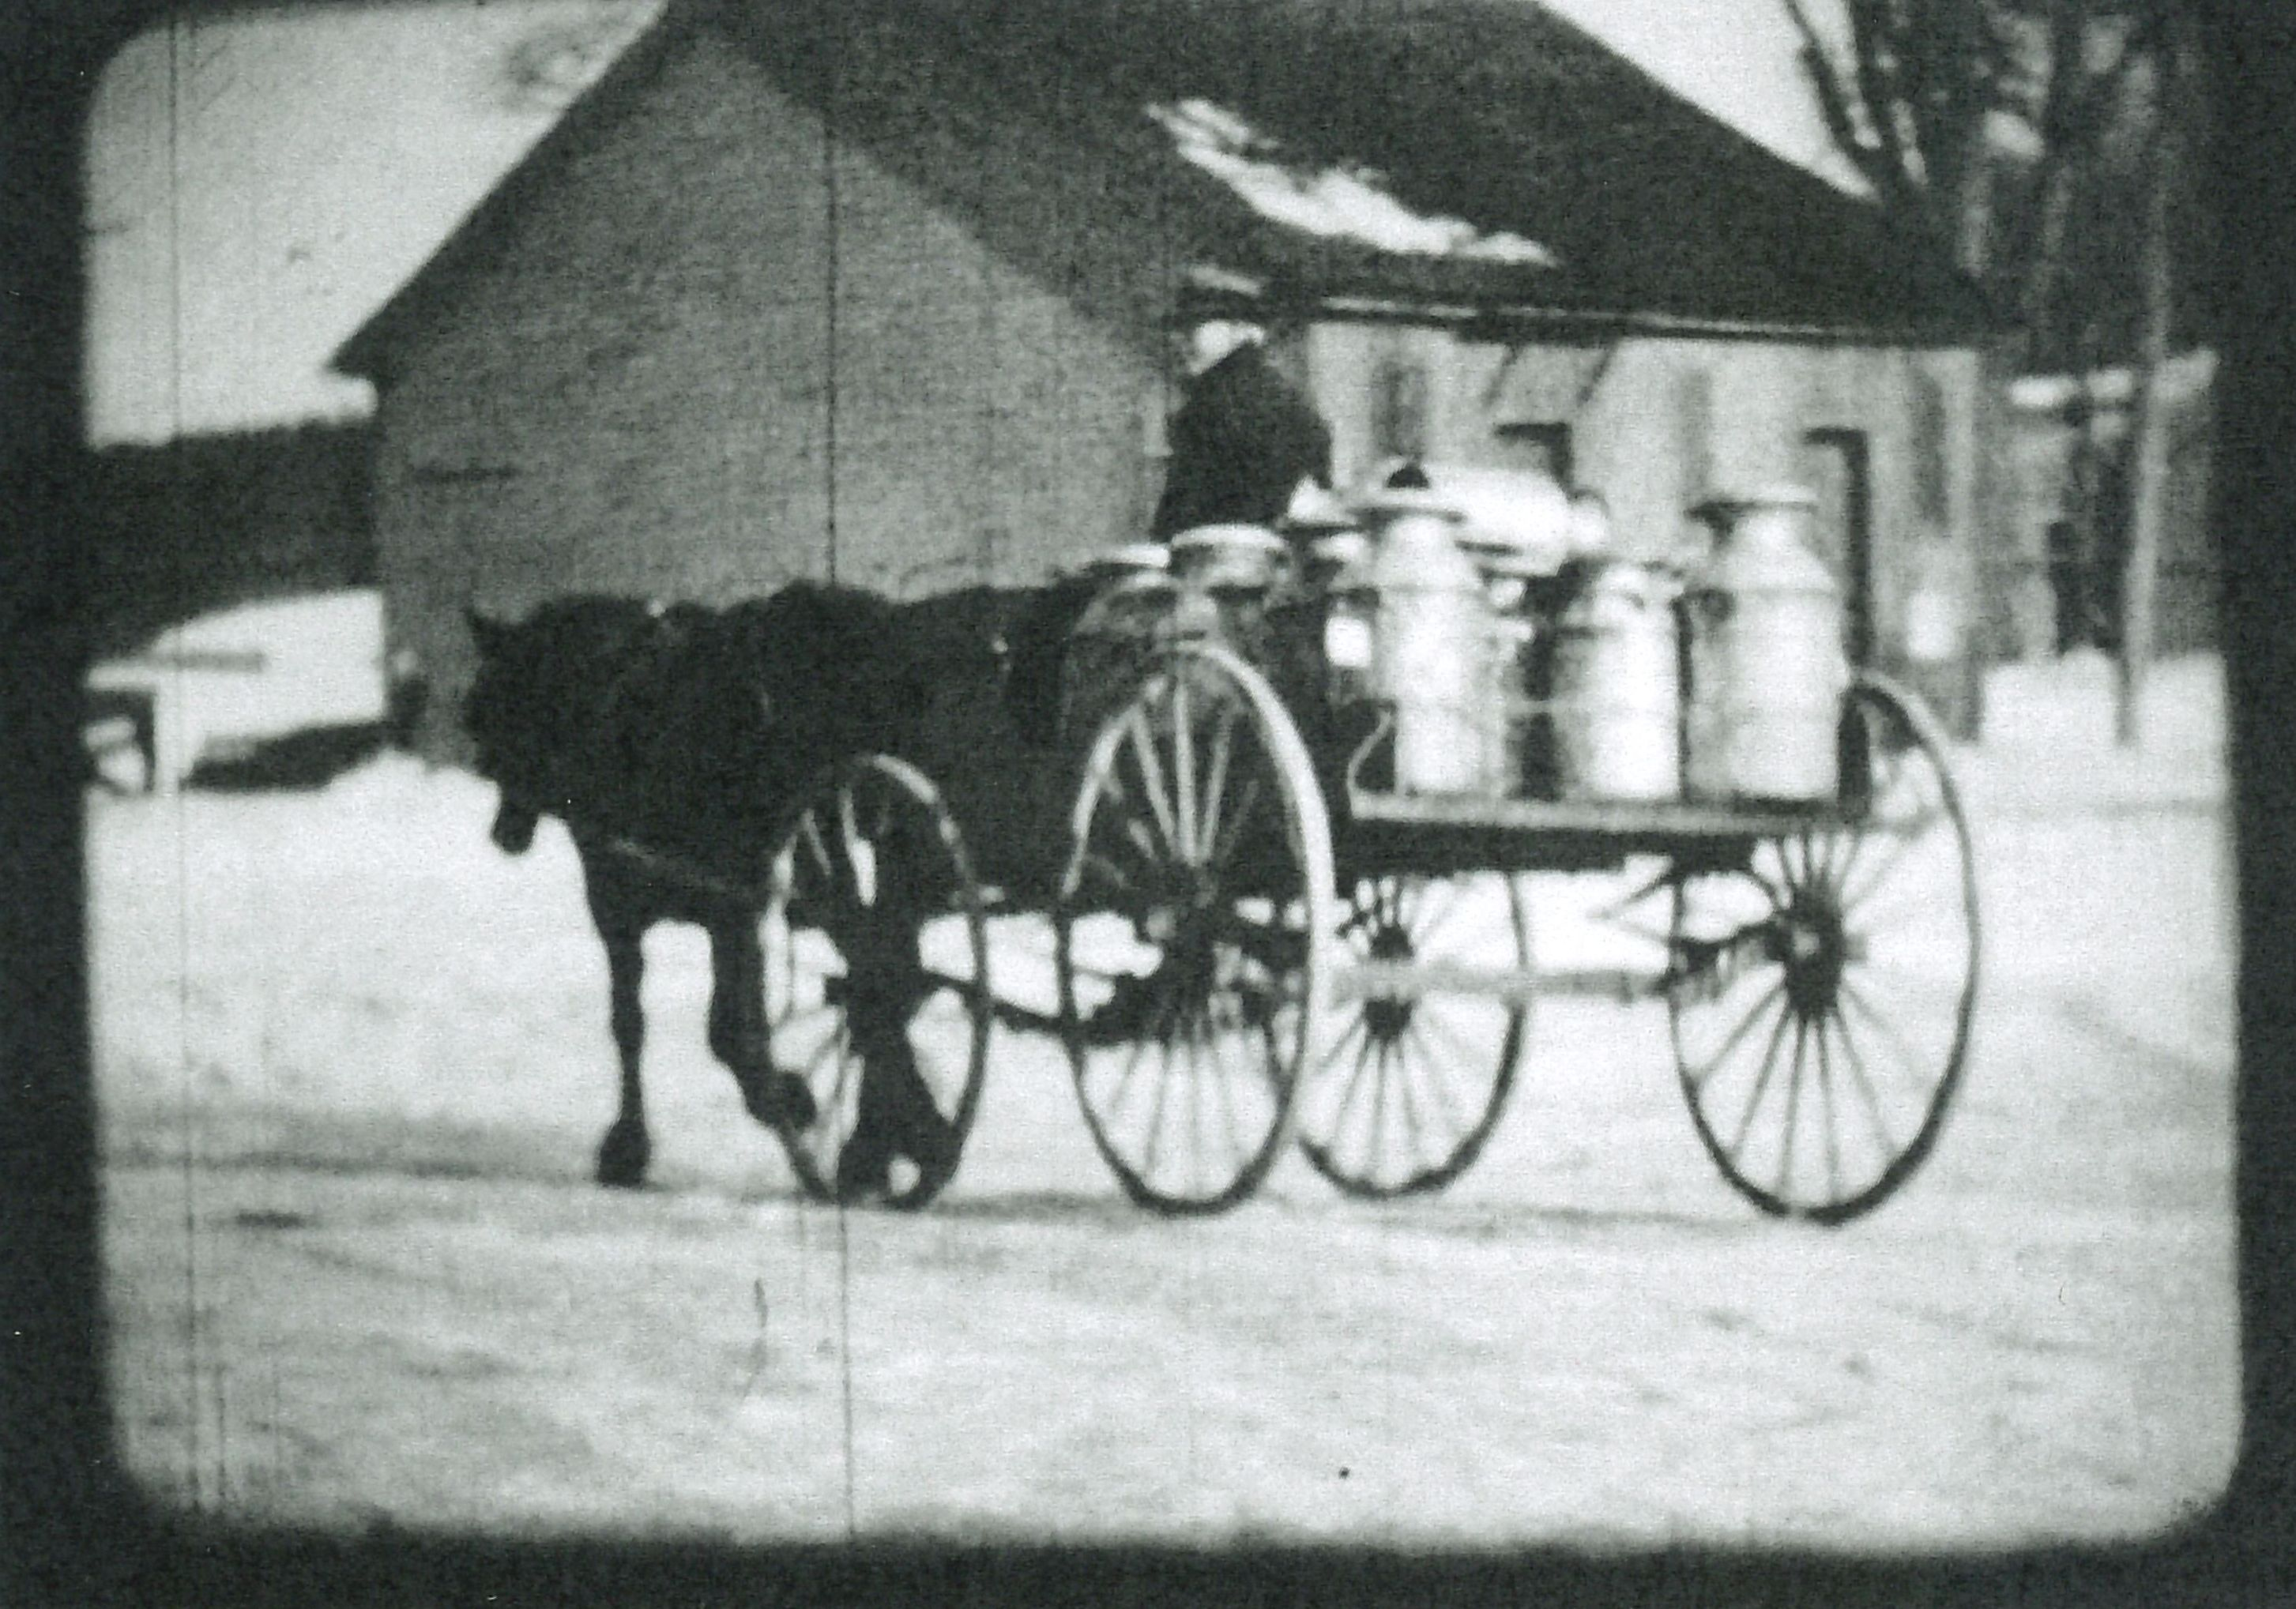 Still image of milk being delivered to the Contoocook Depot from film by Oscar Polhemus, circa 1930.